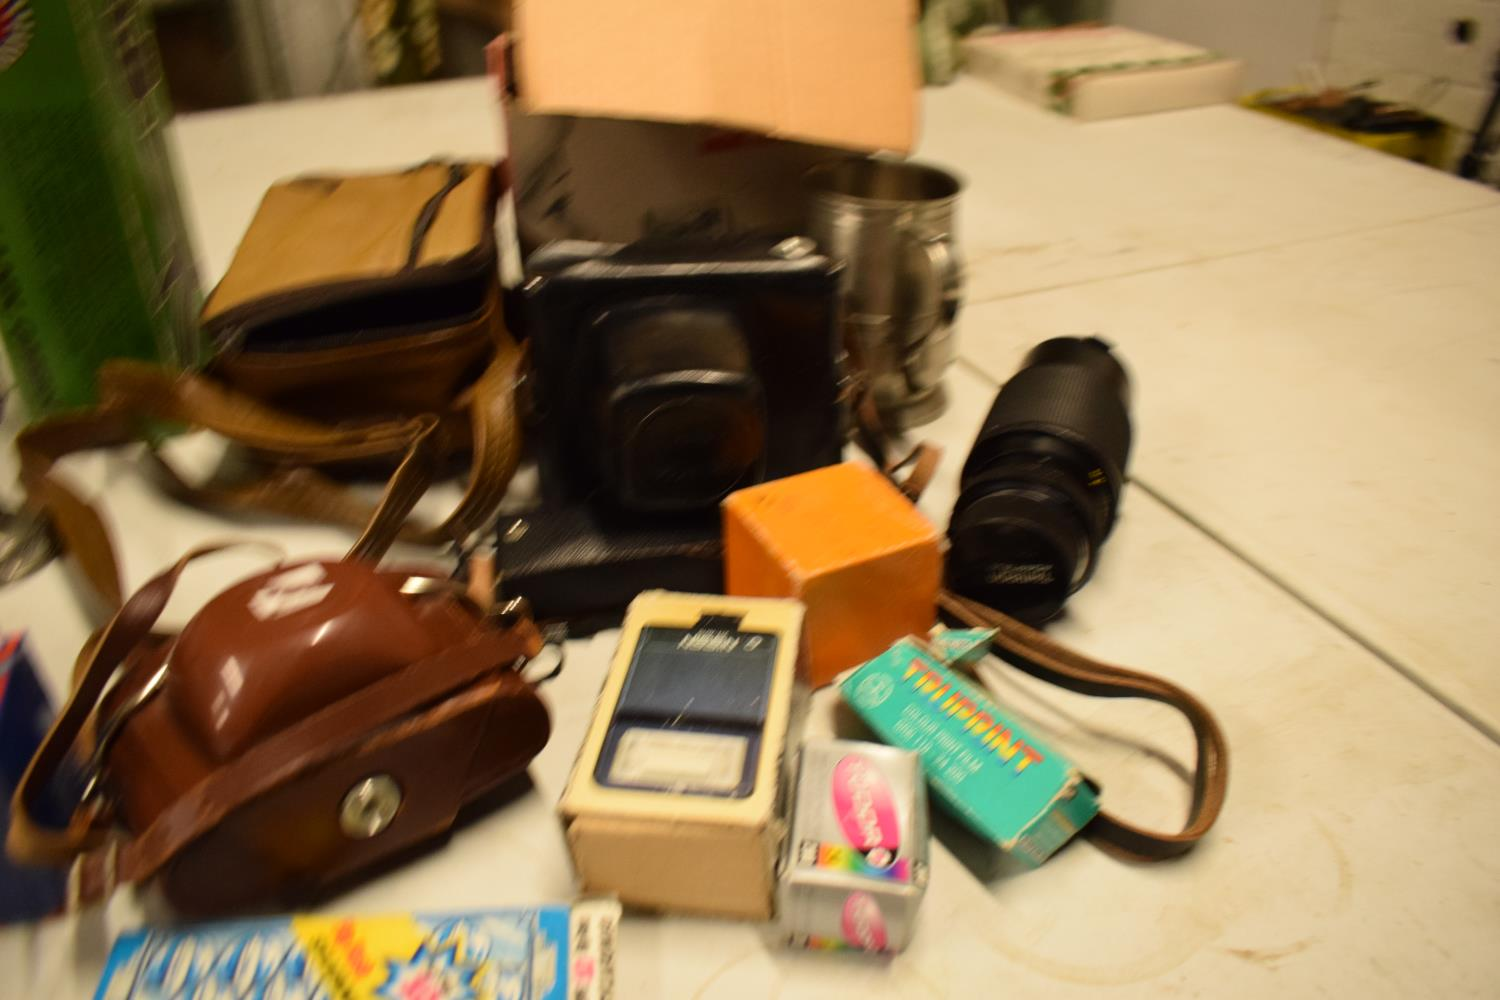 A mixed collection of items to include camera equipment, tankards, novelty cigarette dispenser etc - Image 4 of 4